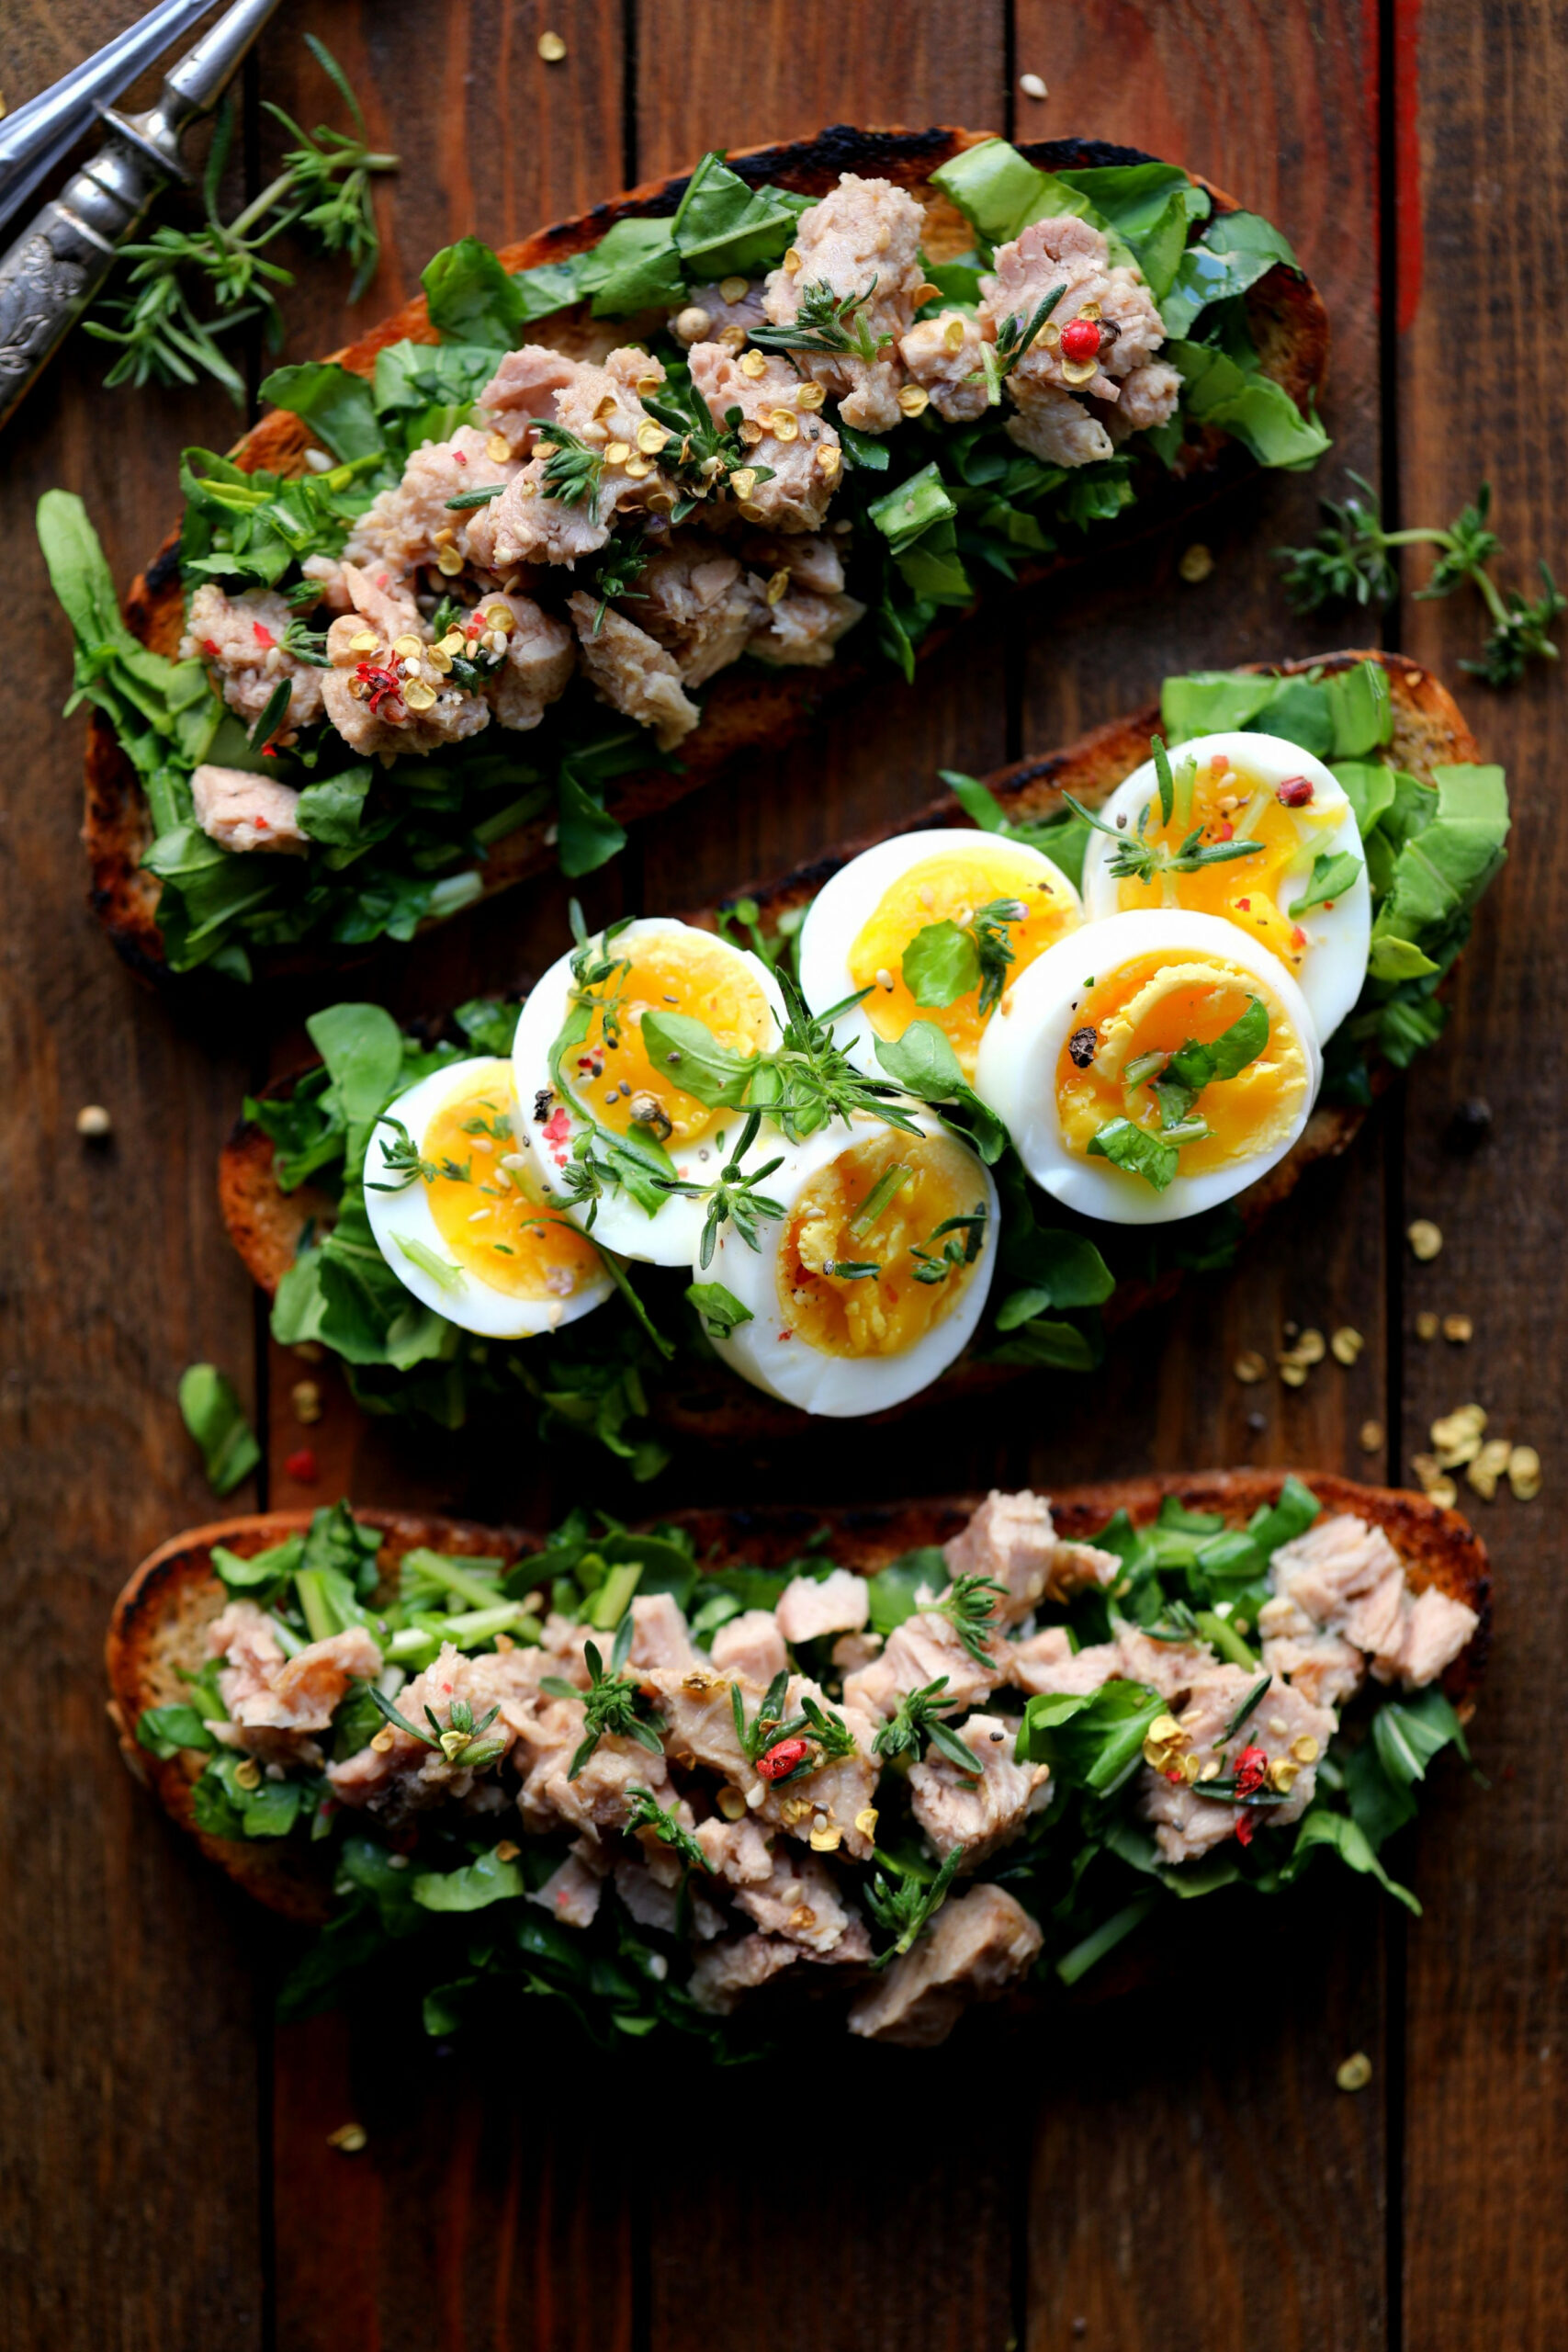 Dinner toasts with tuna salad, egg & greens - egg recipes dinner